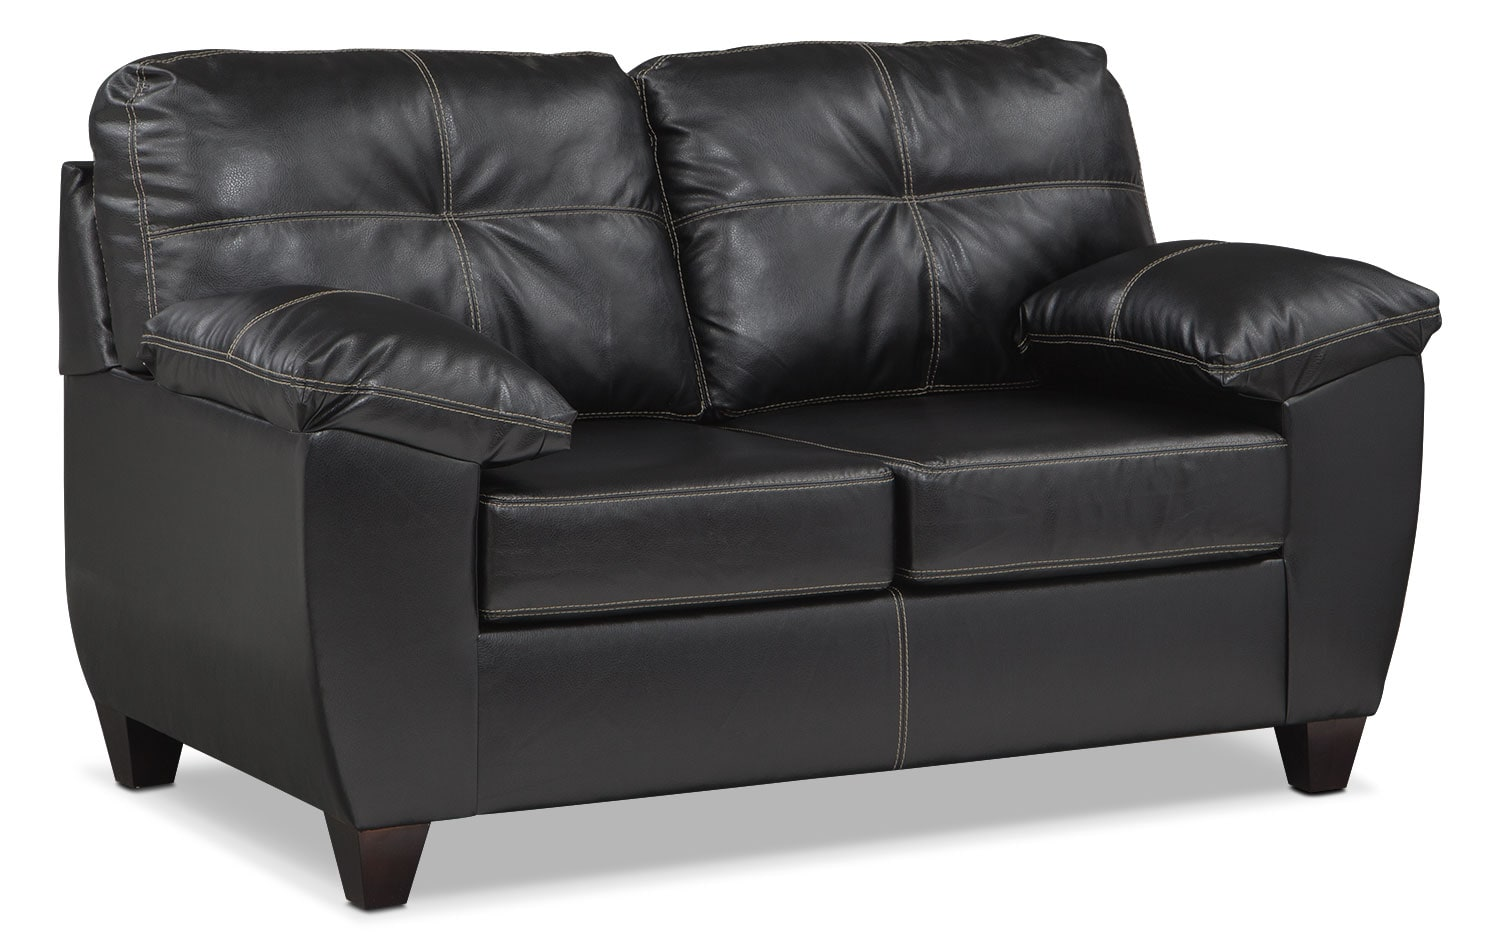 Sofa Foam Leeds Ricardo Queen Memory Foam Sleeper Sofa And Loveseat Set Onyx